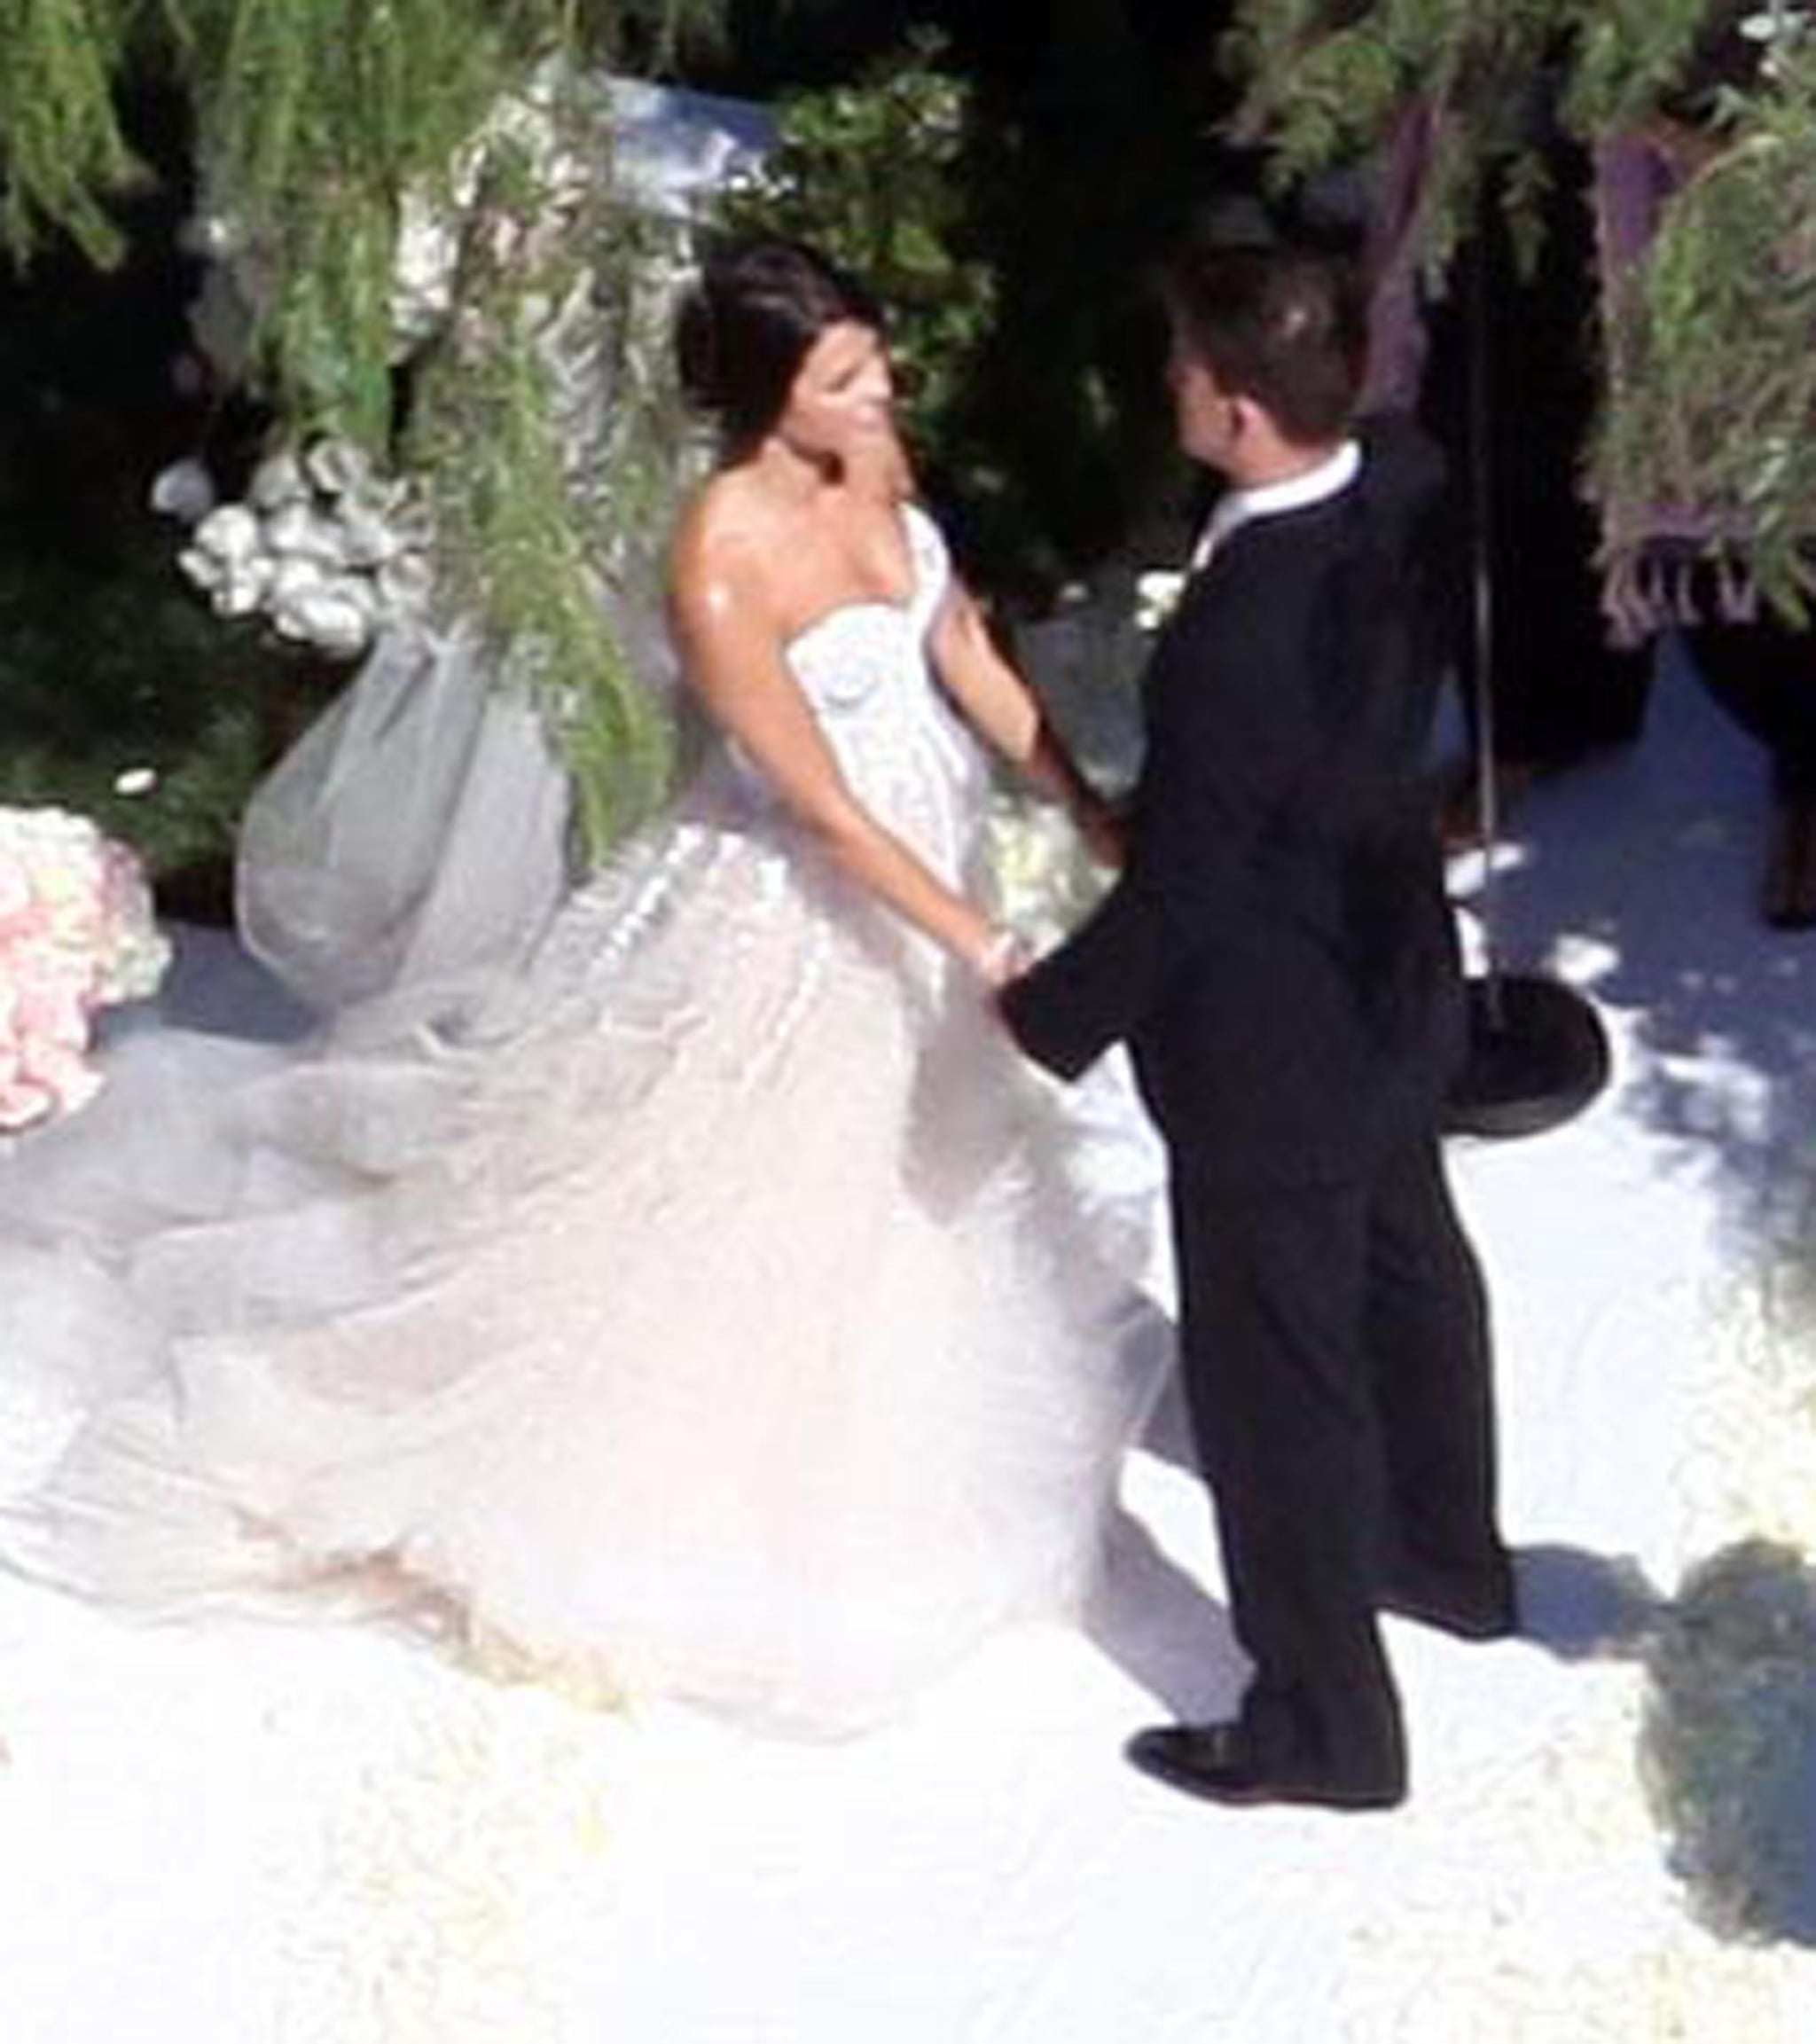 Channing married Jenna in a July 2009 ceremony in Malibu, CA.